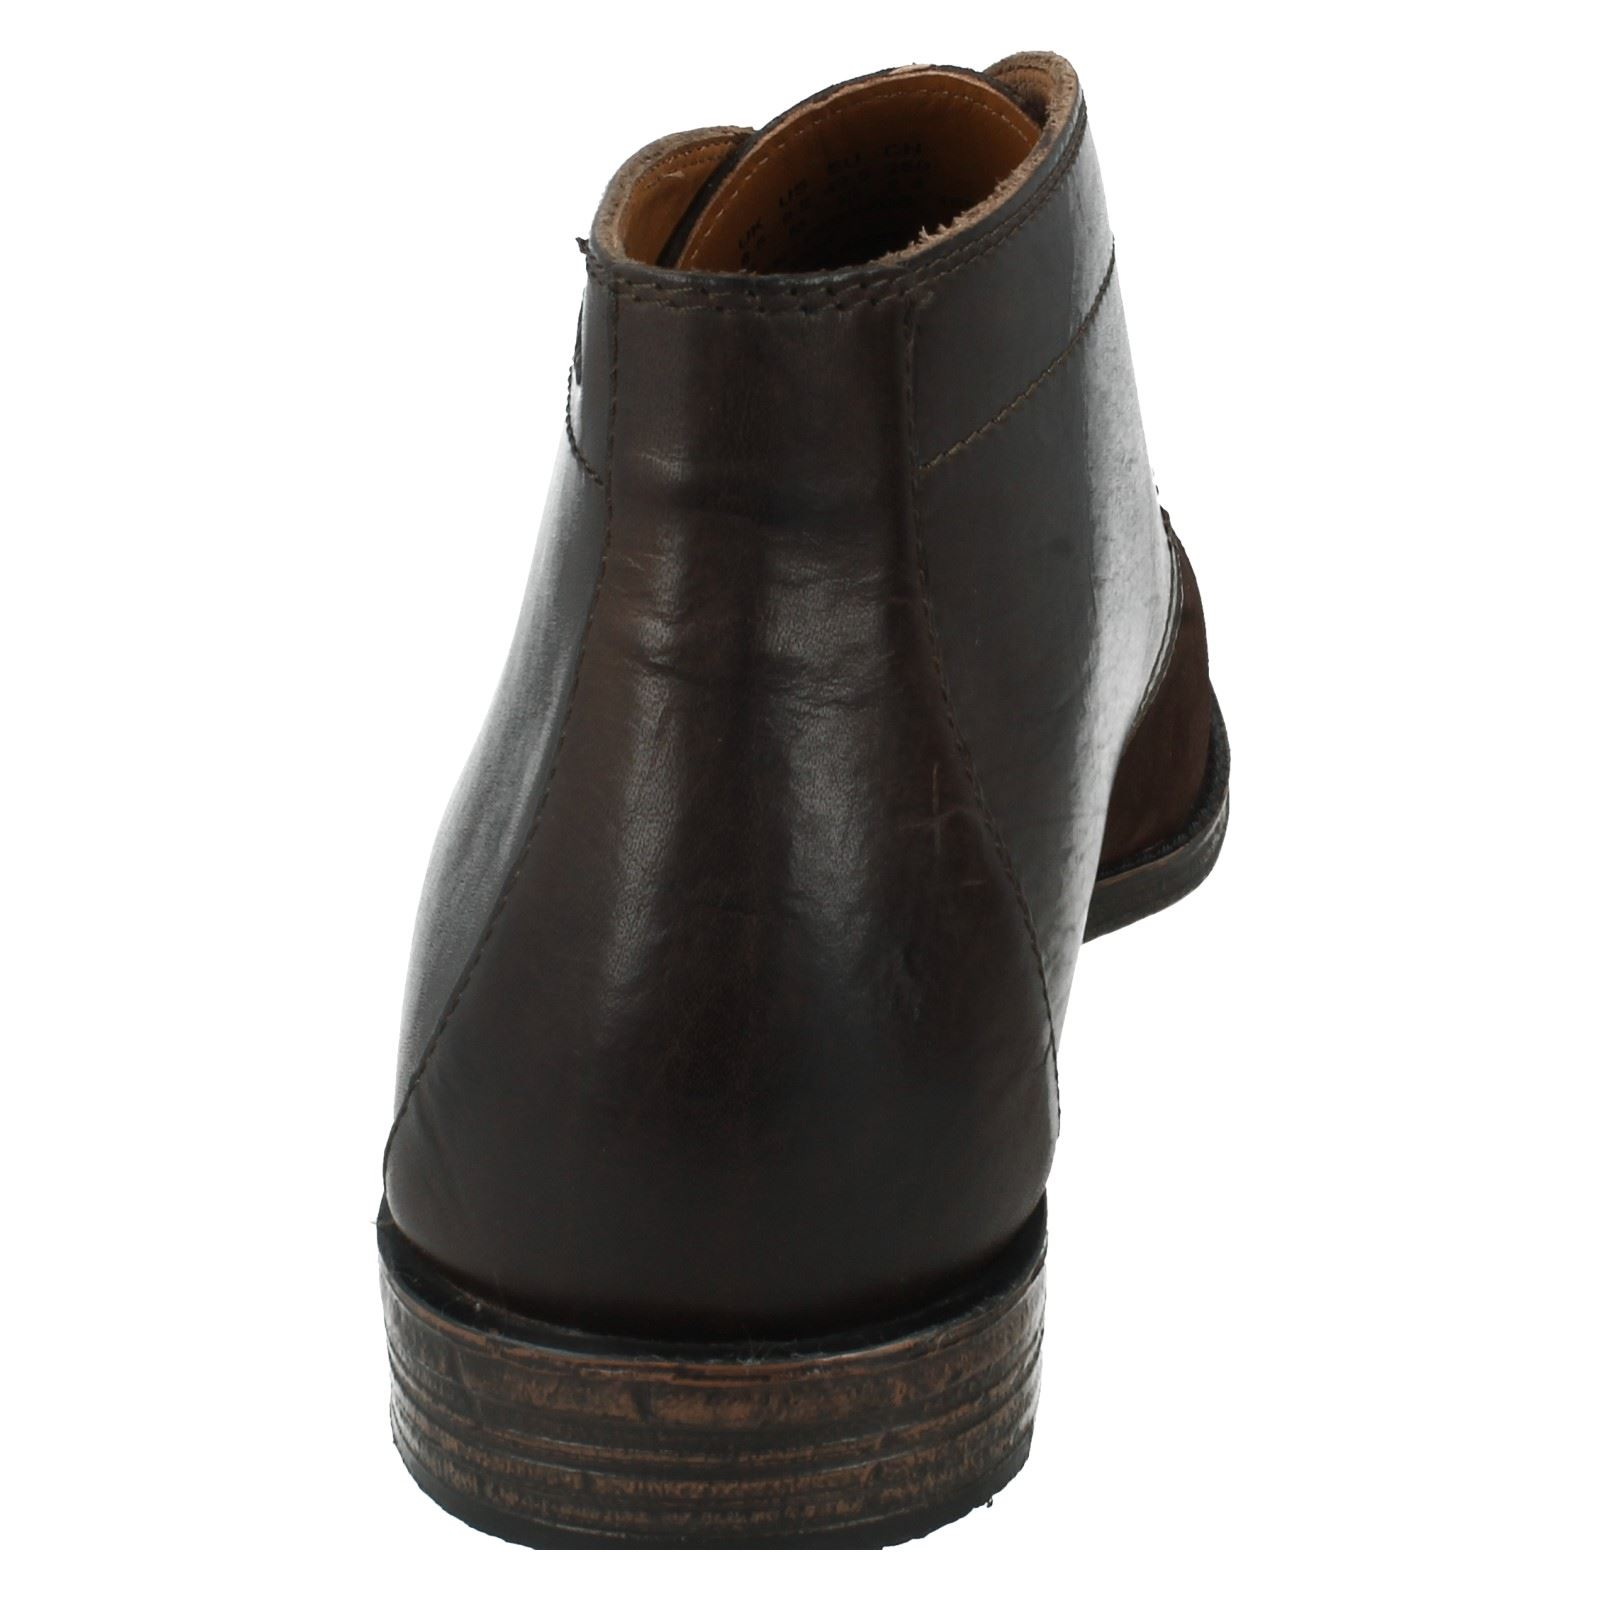 mens clarks smart leather boots style hawkley rise ebay